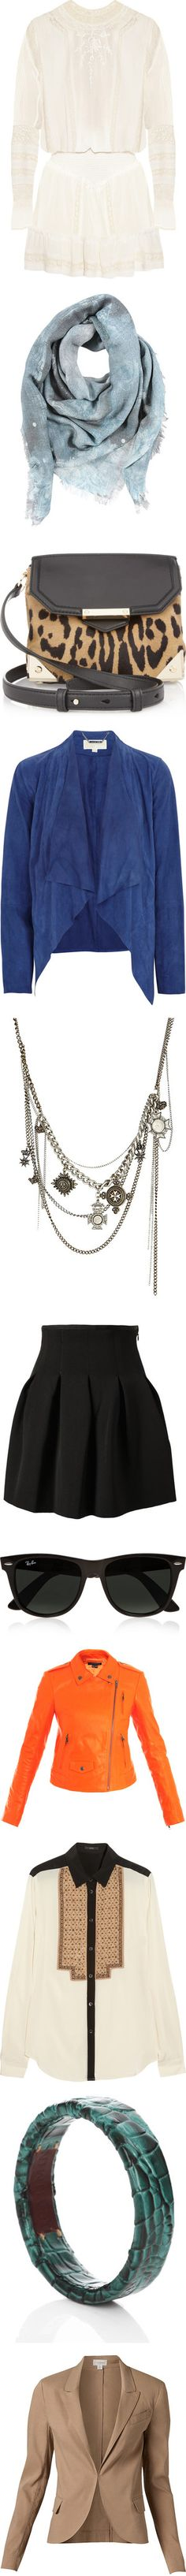 """""""Collection #1"""" by shiul-shiul ❤ liked on Polyvore"""